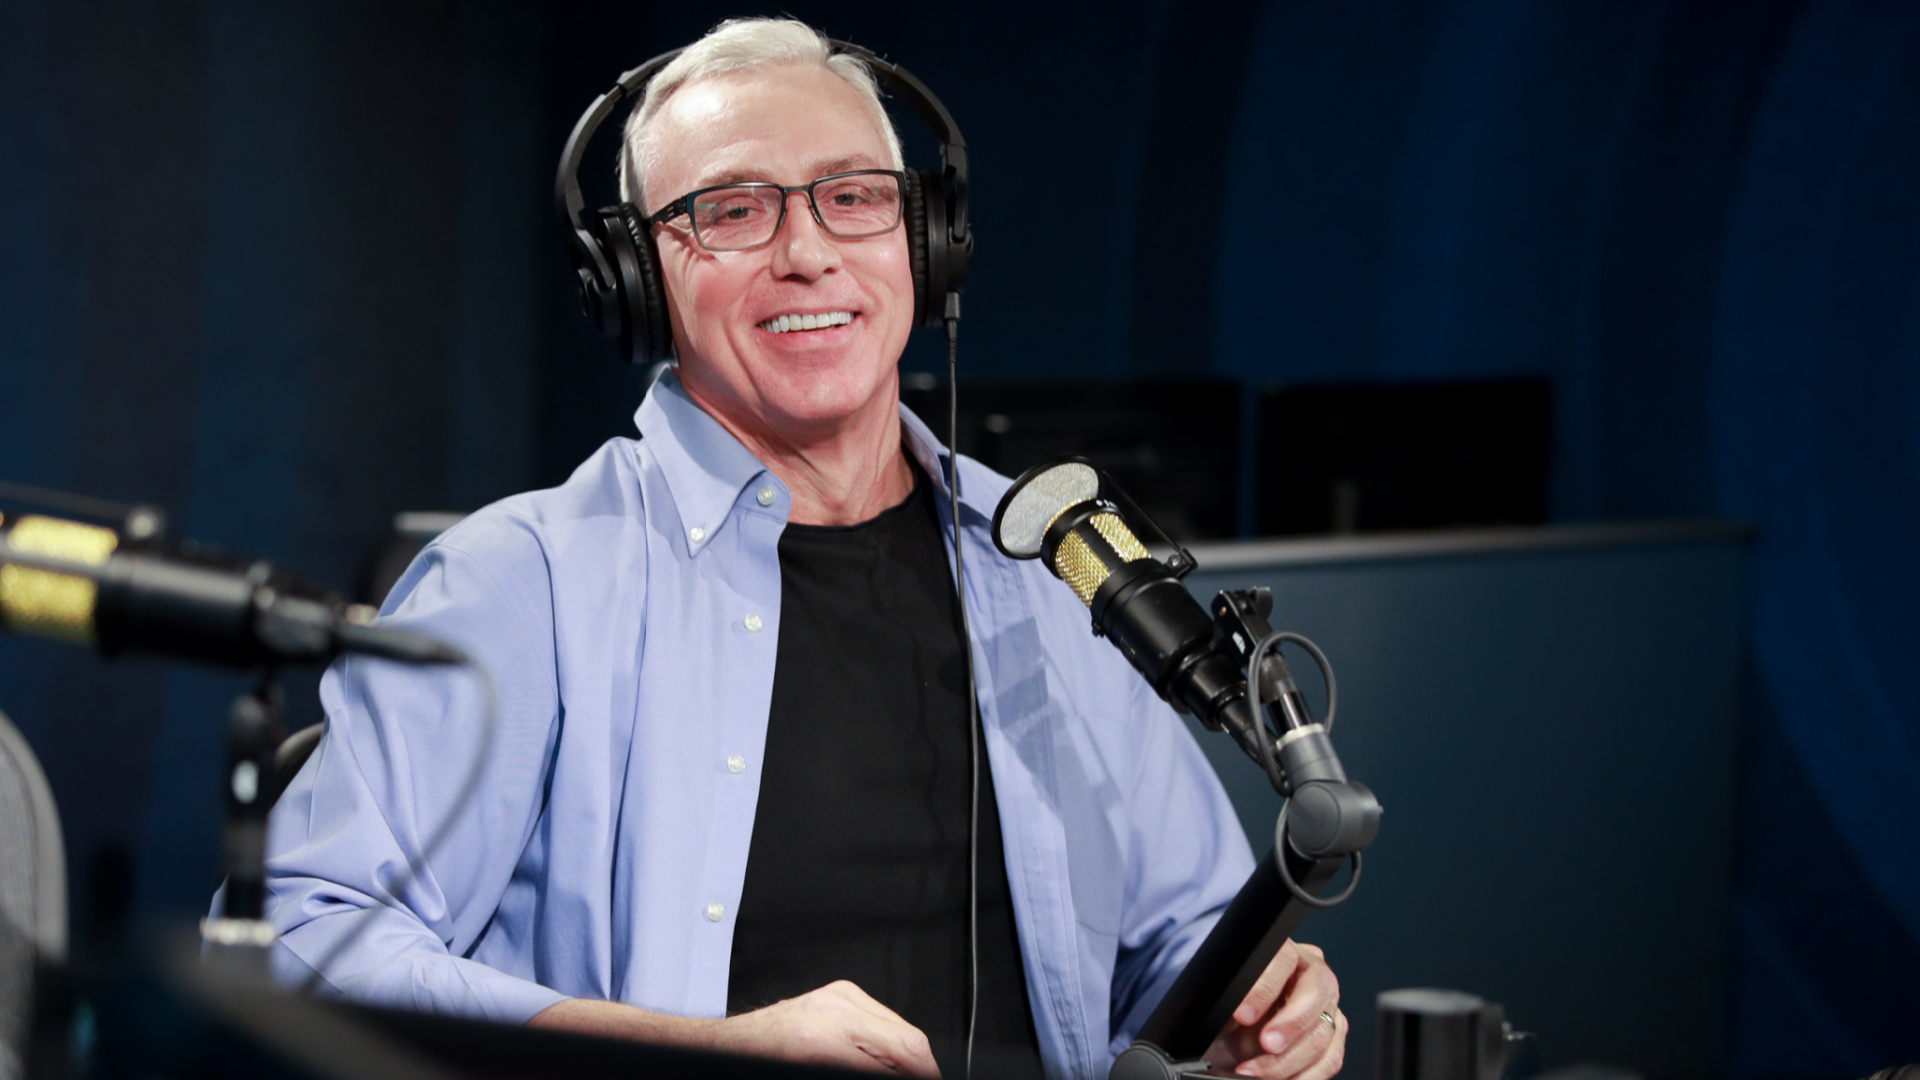 Dr. Drew Pinsky visits the SiriusXM Hollywood Studio on Feb. 27, 2020 in Los Angeles. (Rich Fury/Getty Images)